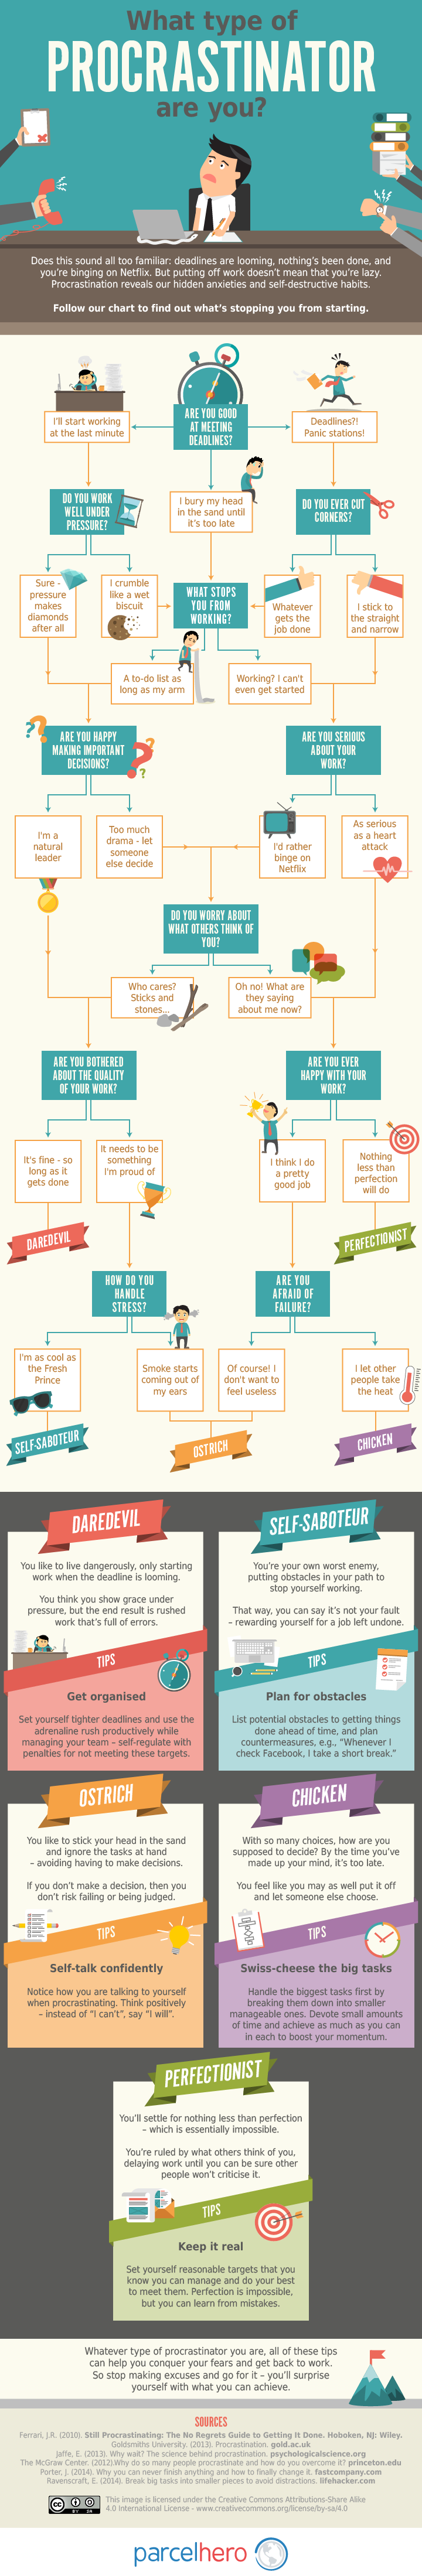 What Type of Procrastinator Are You? [Infographic]